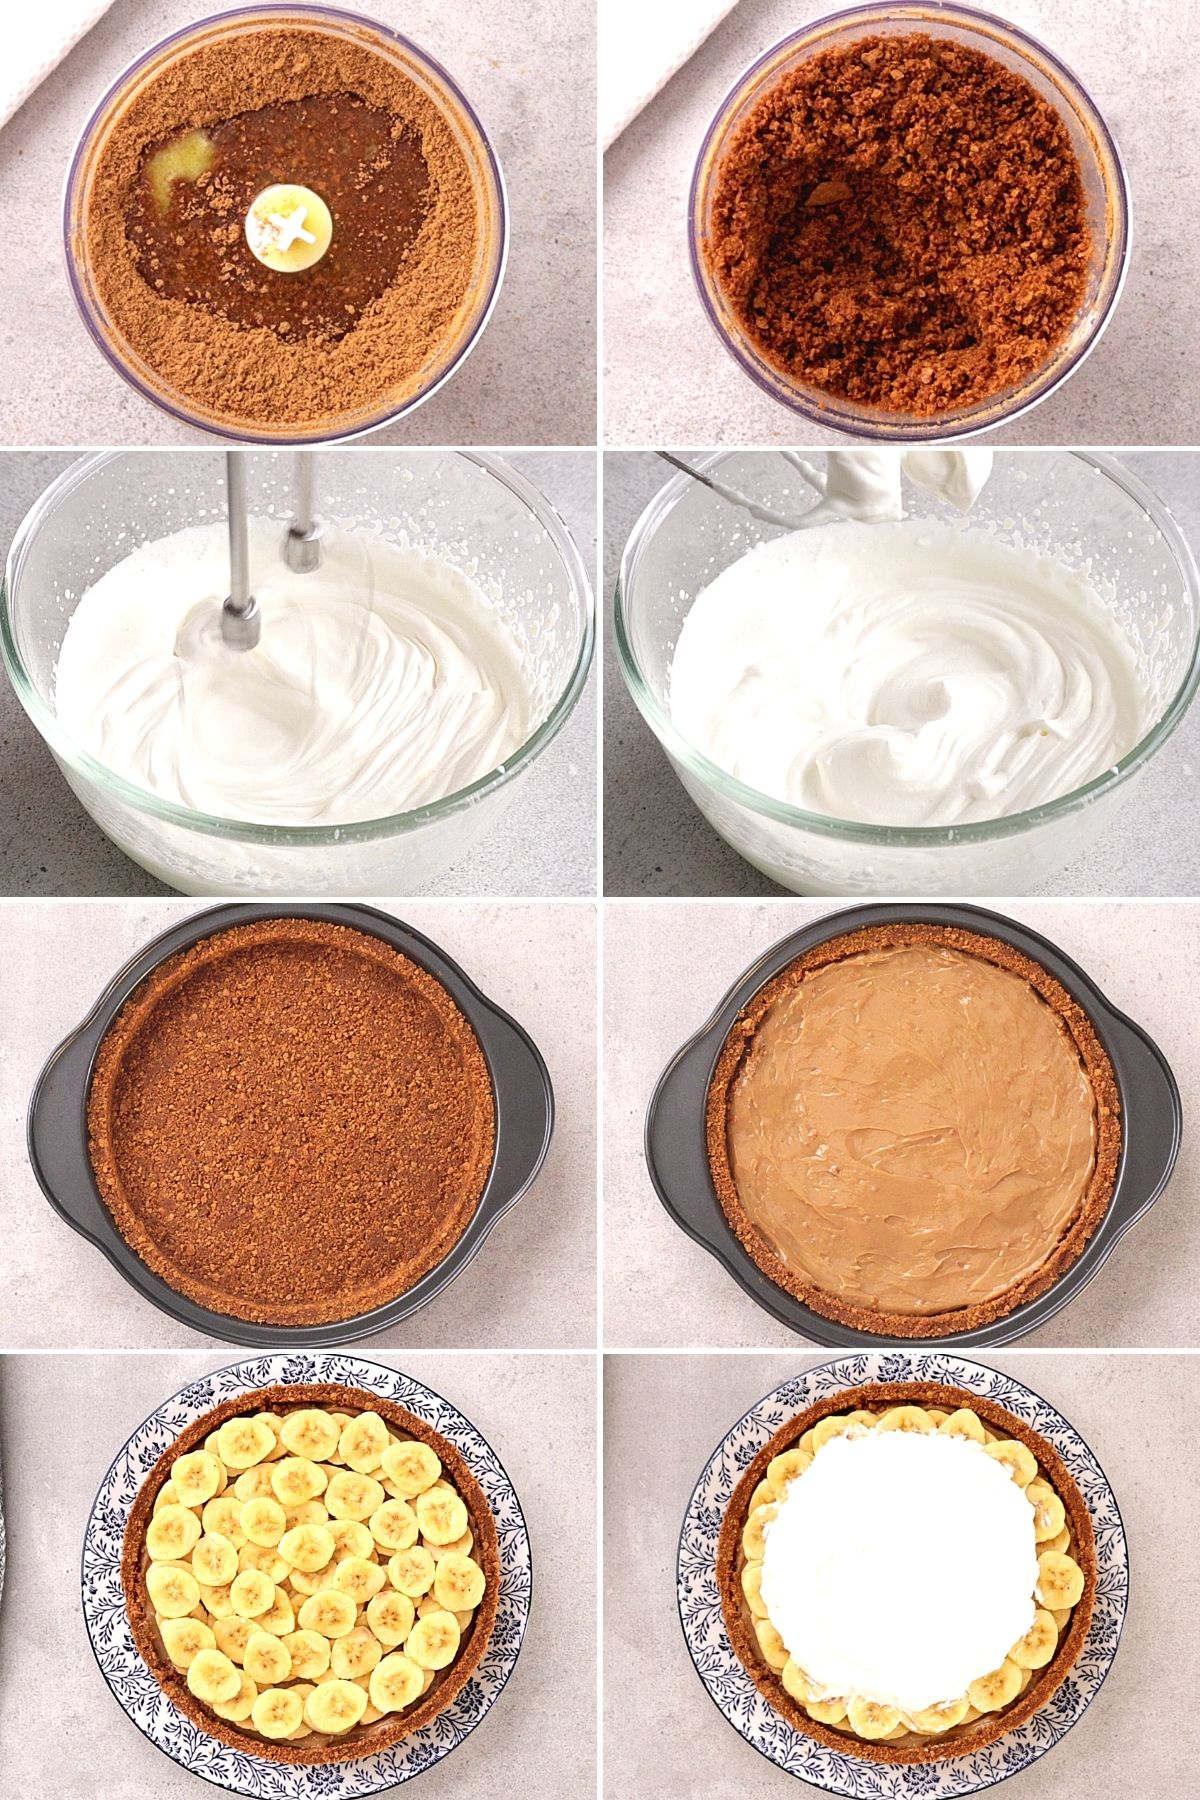 How to make Banoffee Pie Step-by-step